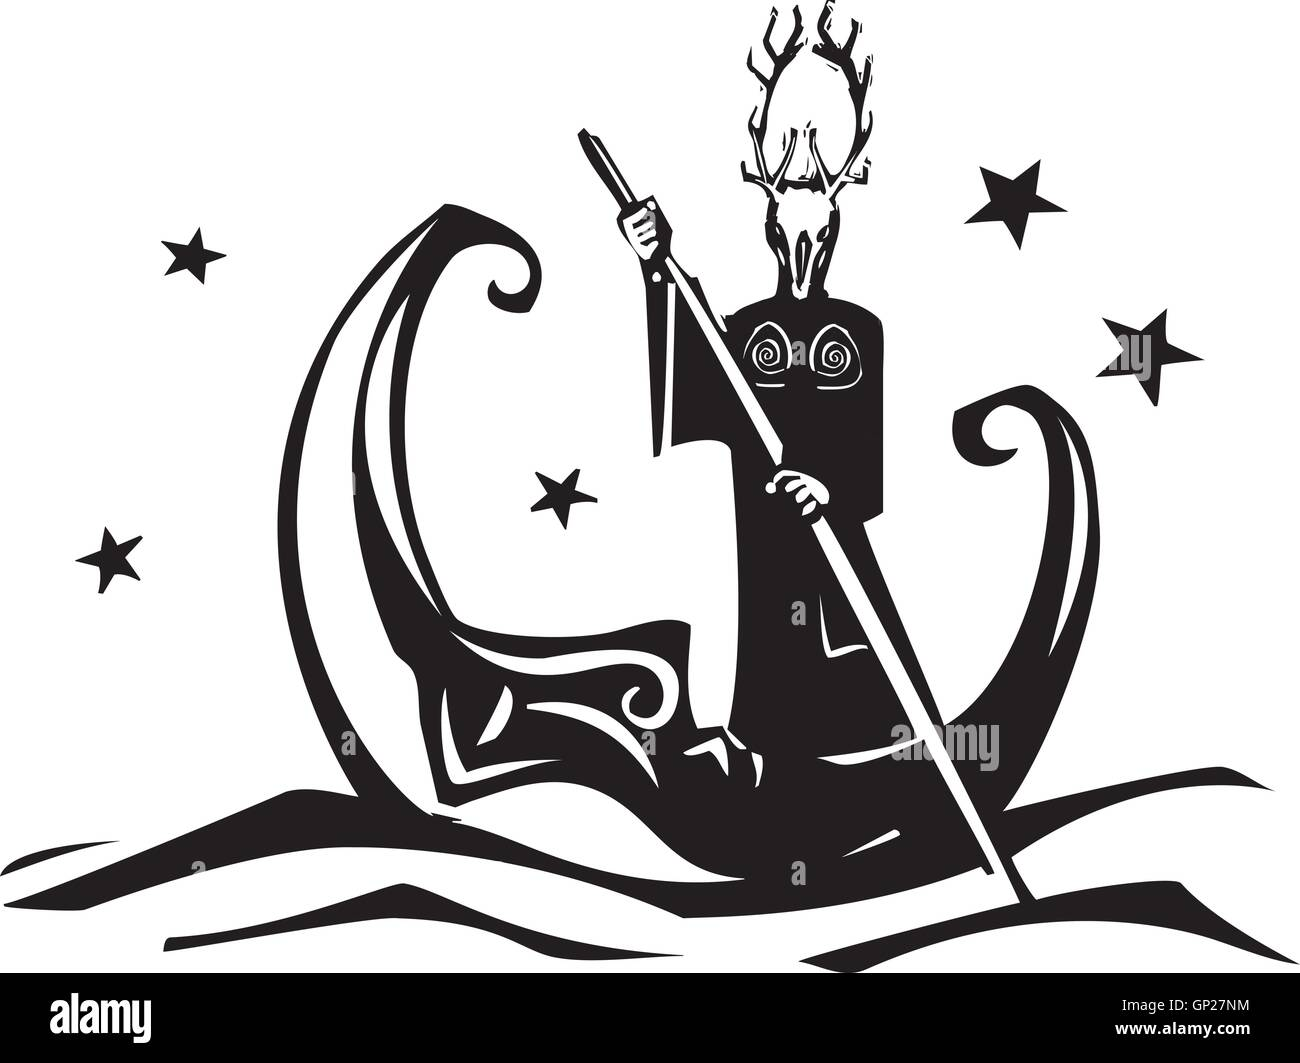 Horned God Stock Photos Horned God Stock Images Alamy